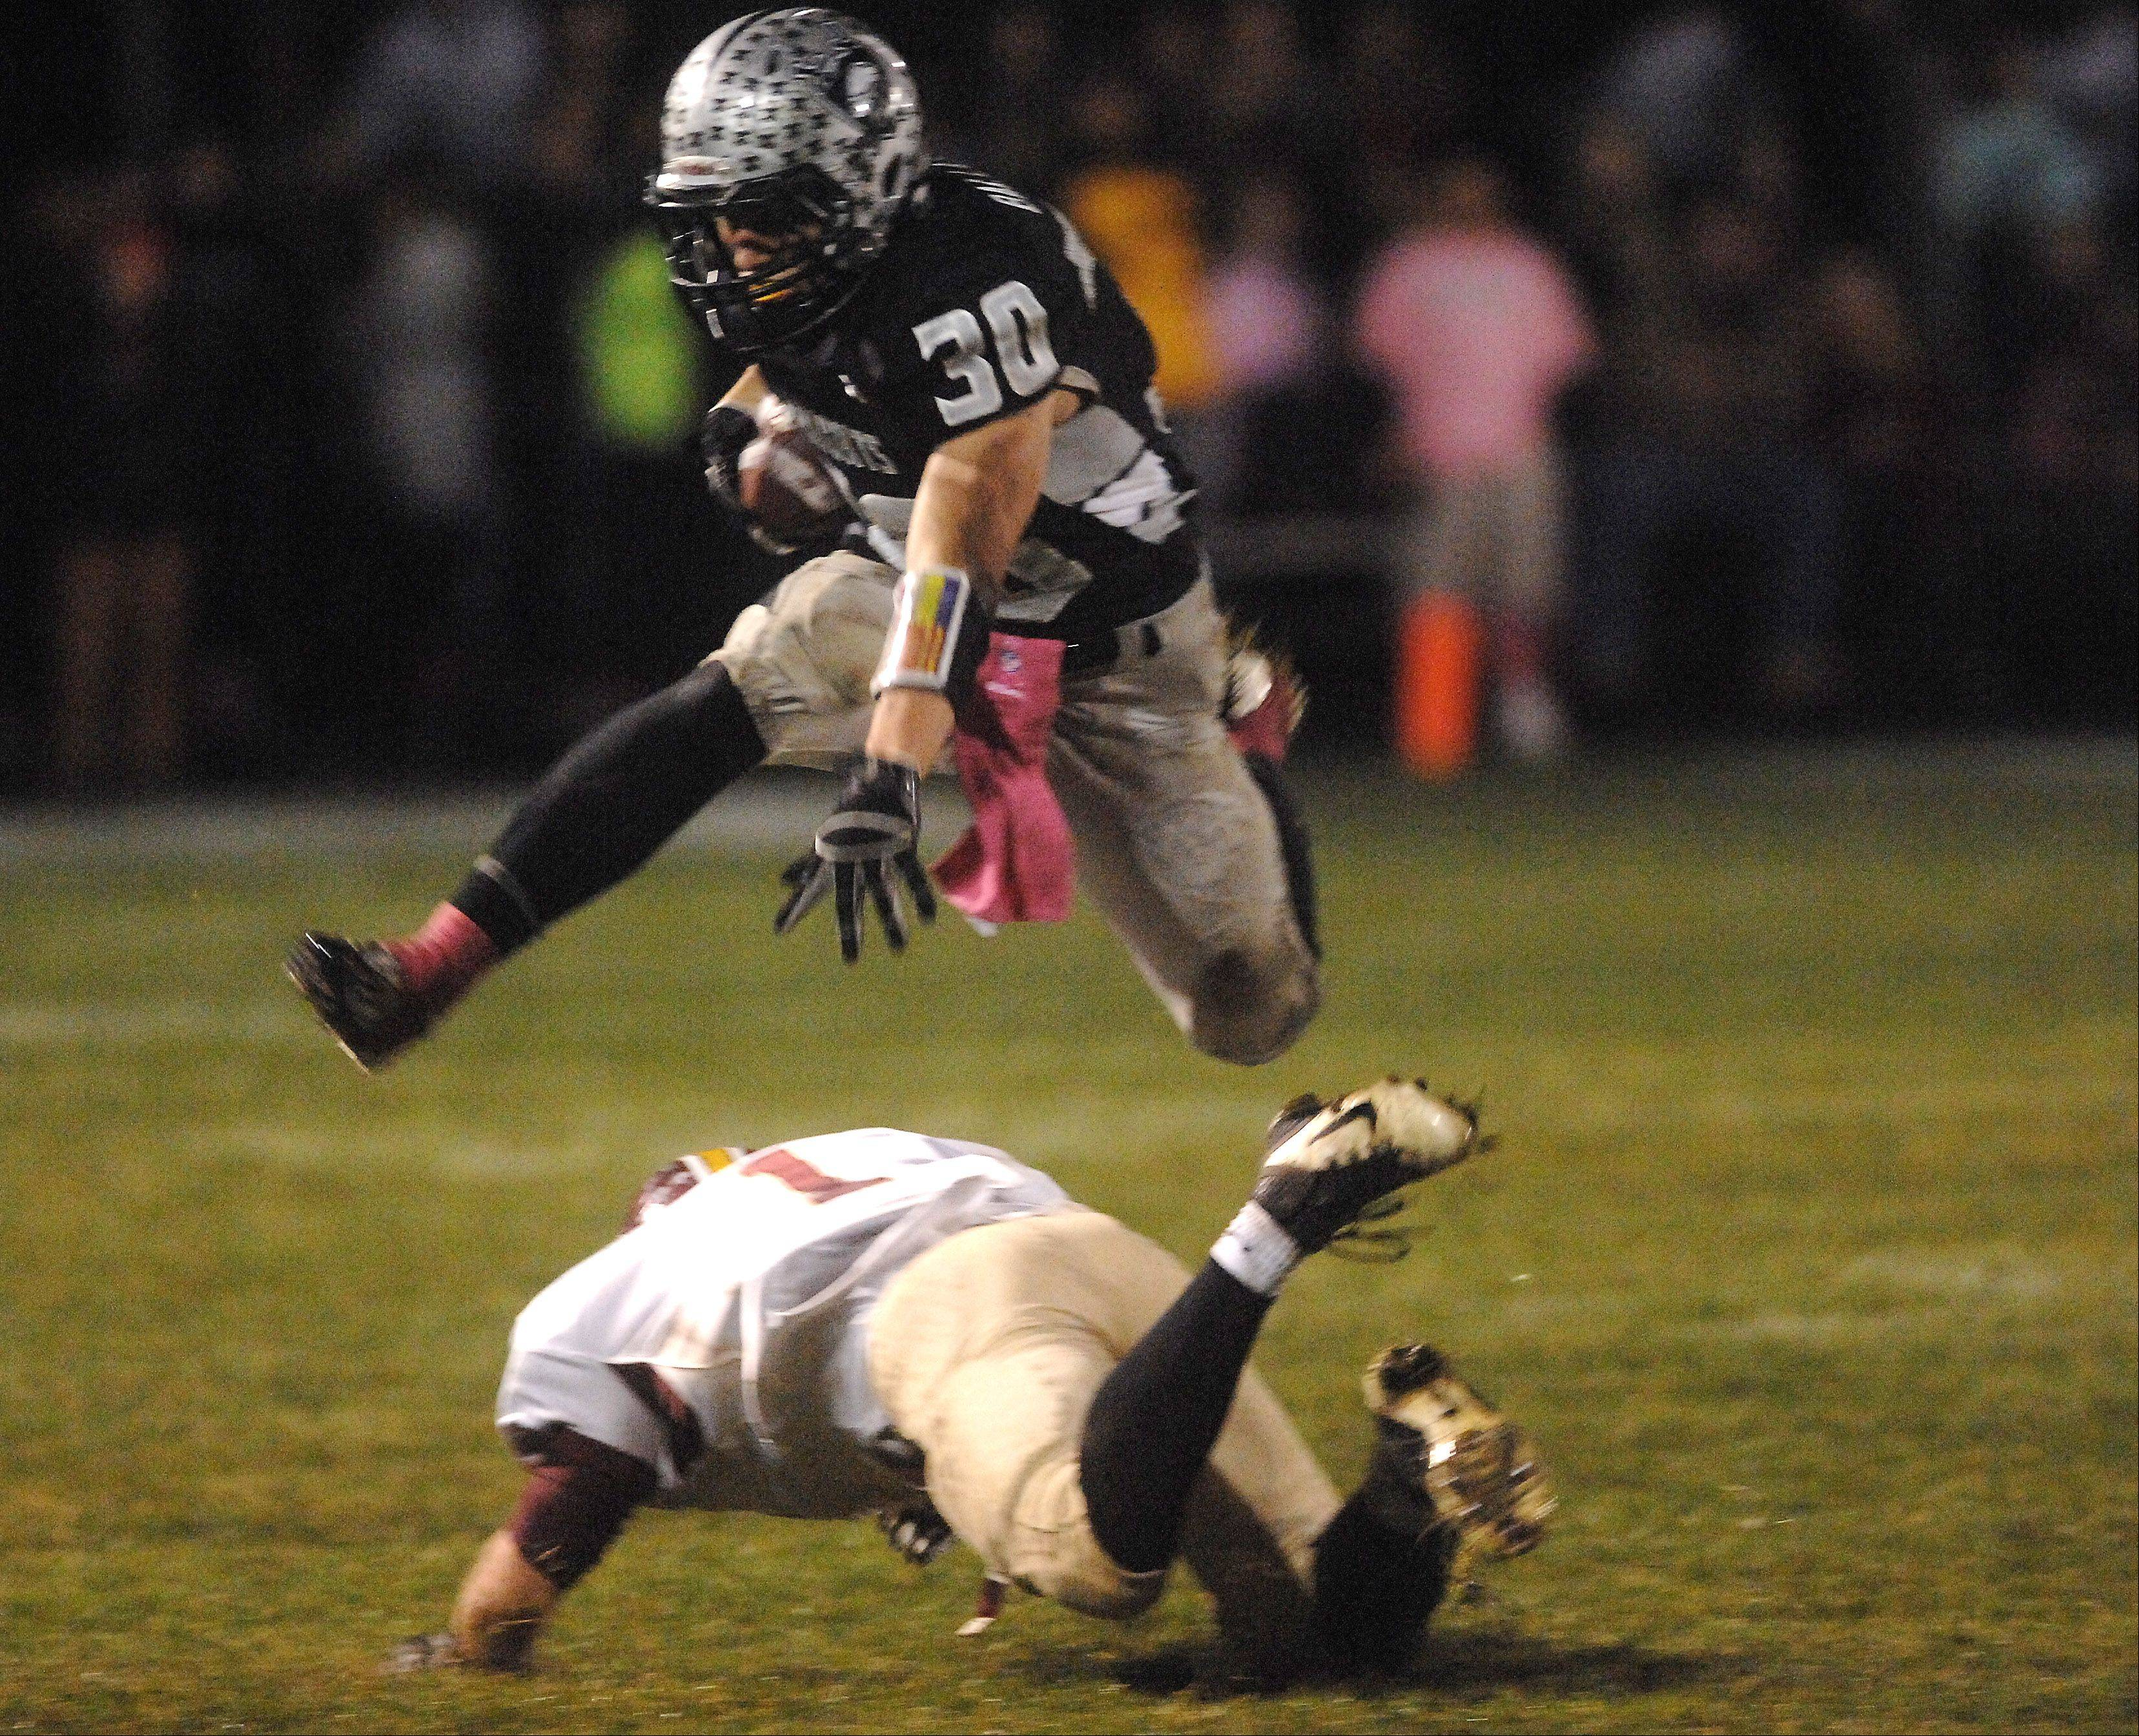 Kaneland's Jesse Balluff hurdles a would-be Morris tackler during Friday's game in Maple Park.